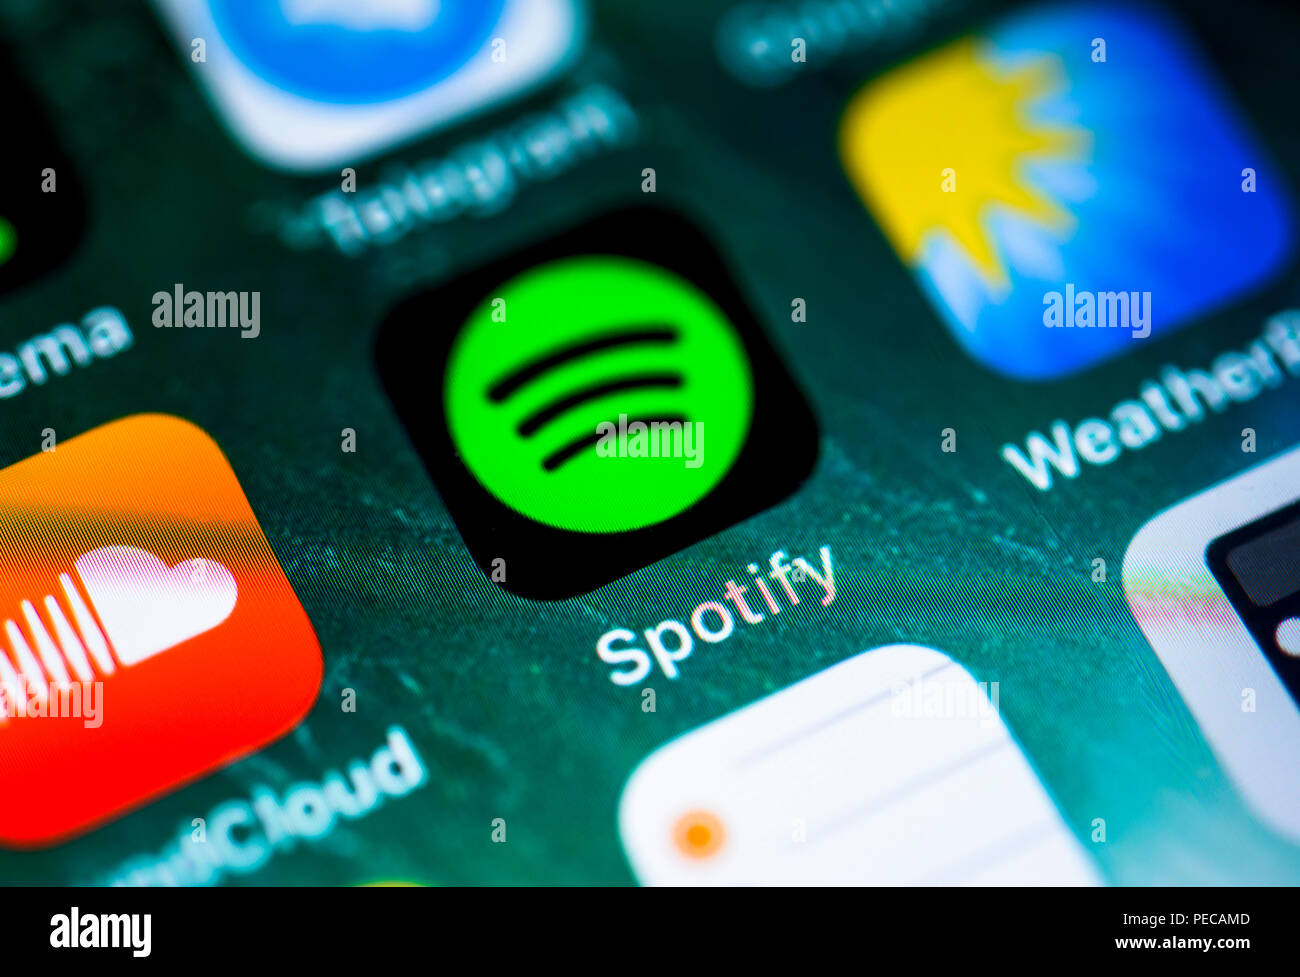 Spotify, music streaming, app icon on iPhone, iOS, smartphone screen, display, close-up, detail, Germany - Stock Image